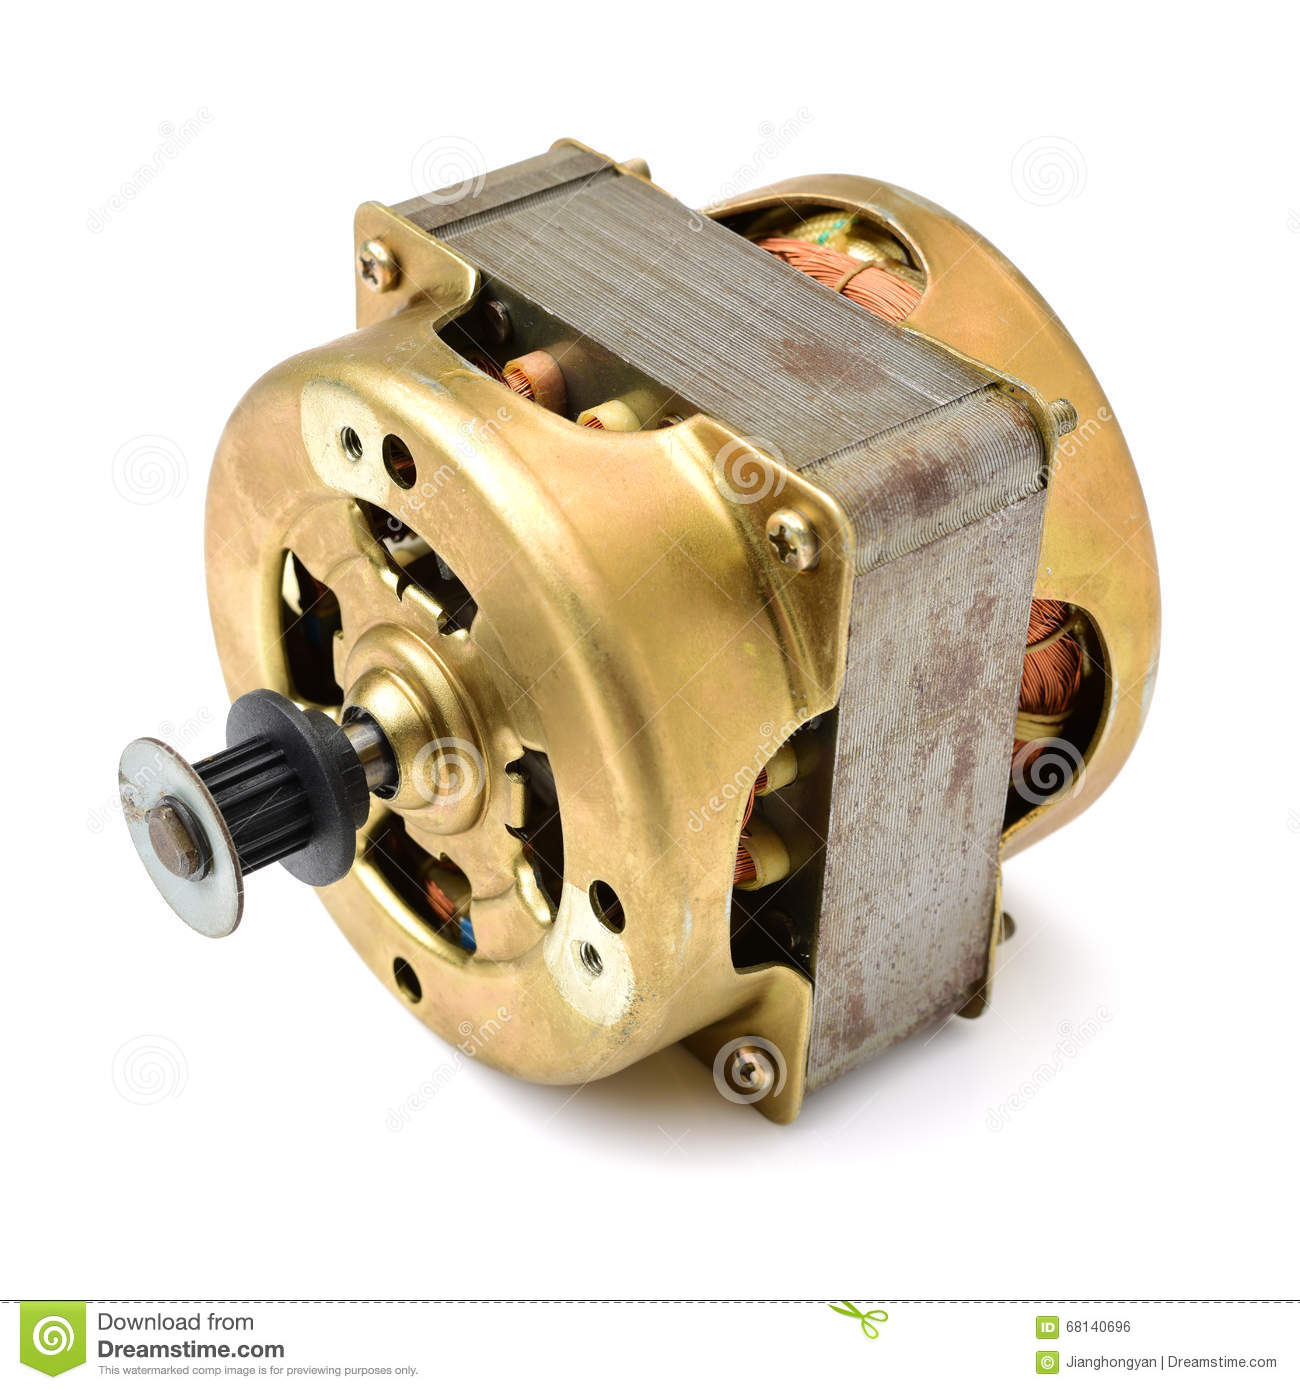 Small generator motor School Science Project Small Electric Motor Electrical Engineering Stack Exchange Small Electric Motor Stock Photo Image Of Generator 68140696